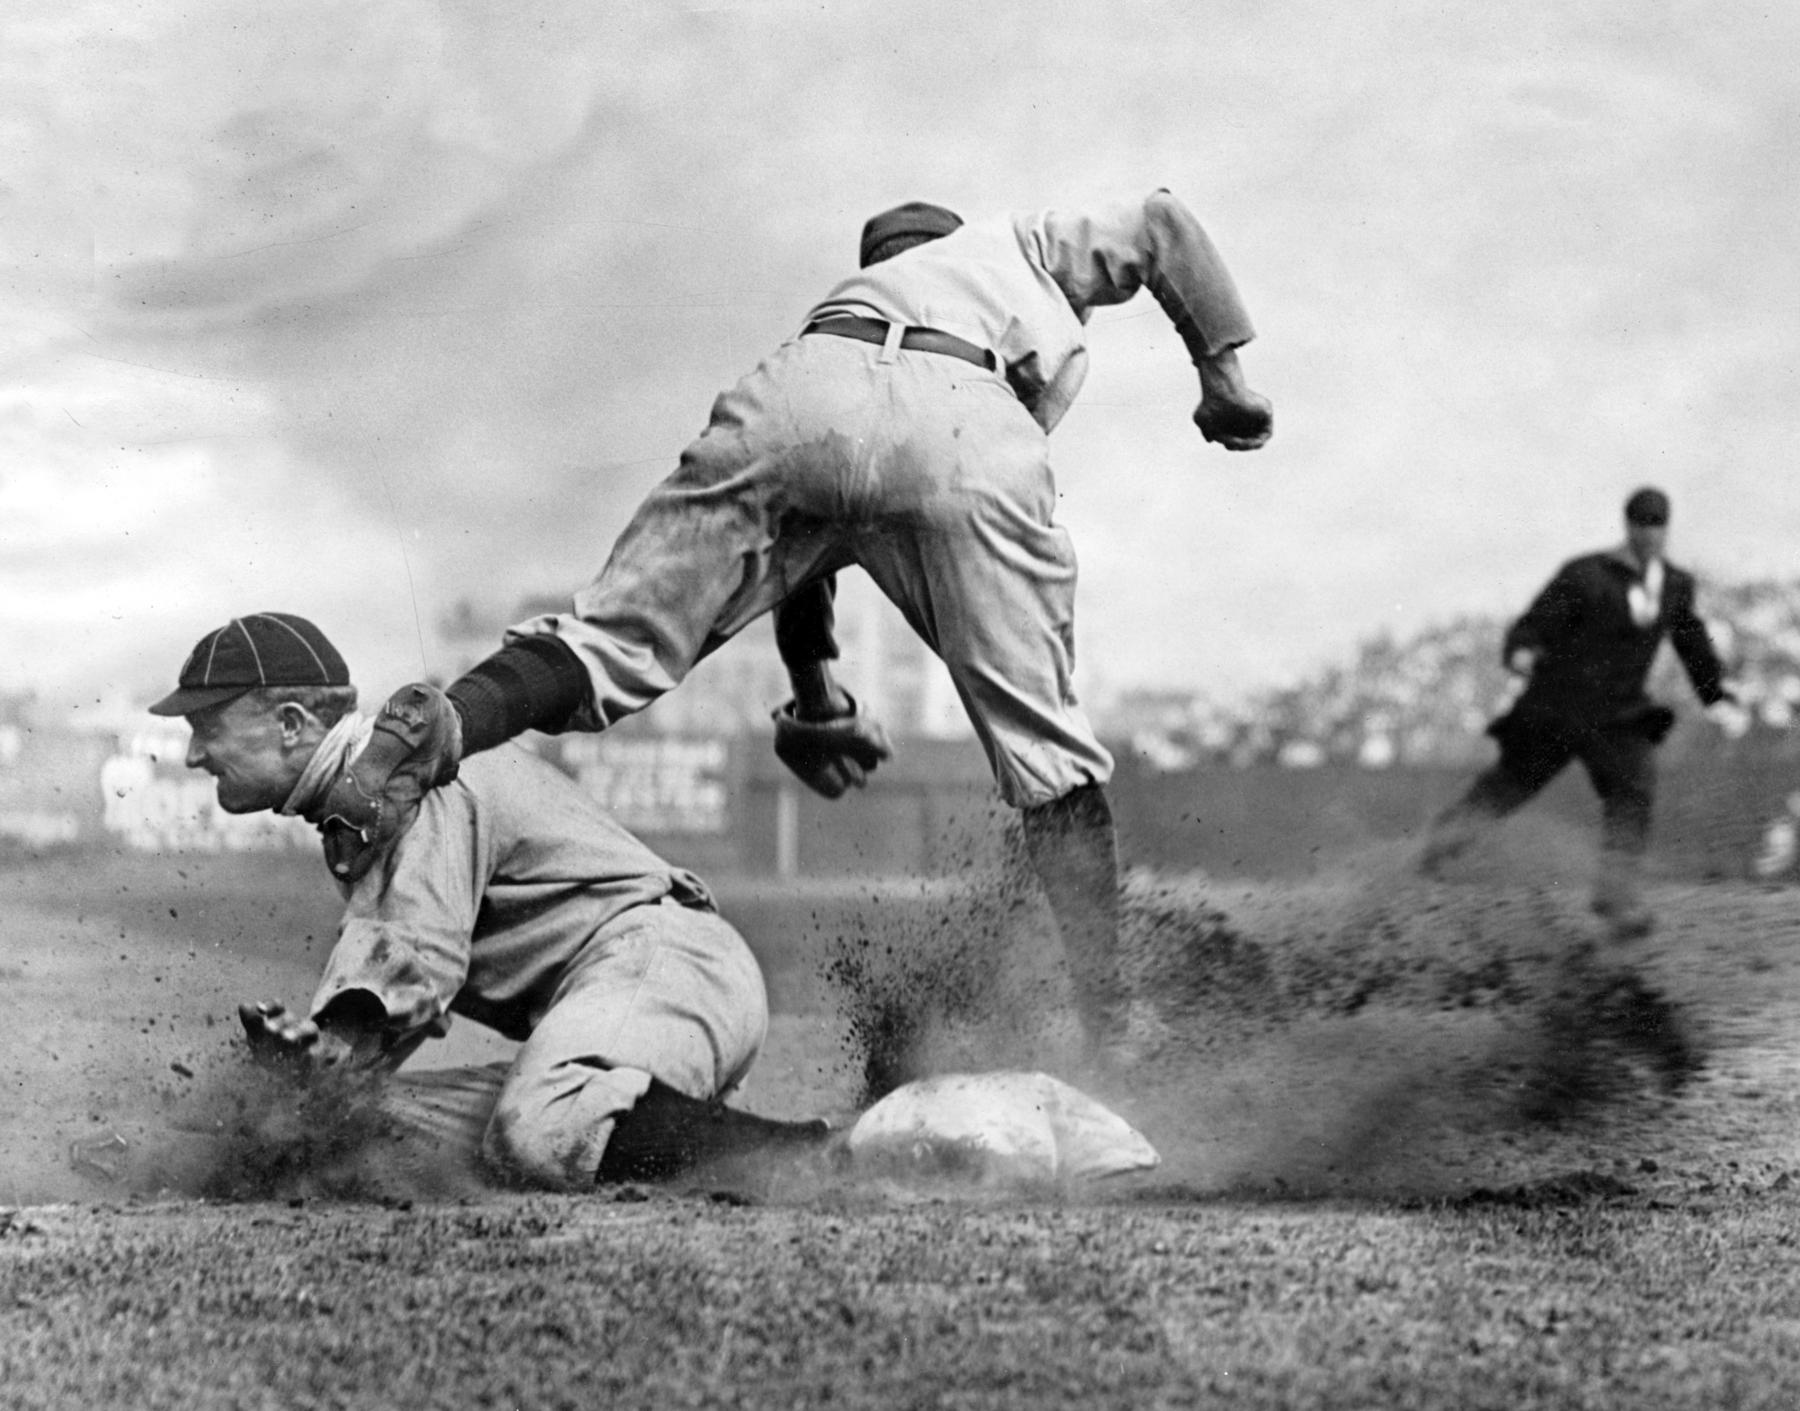 One of Charles Conlon's most enduring photographs was also one of his first - this iconic image of Ty Cobb taken on July 23, 1910. Conlon was on the field, standing behind third base, when he snapped the photo. BL-669-83 (Charles M. Conlon / National Baseball Hall of Fame Library)